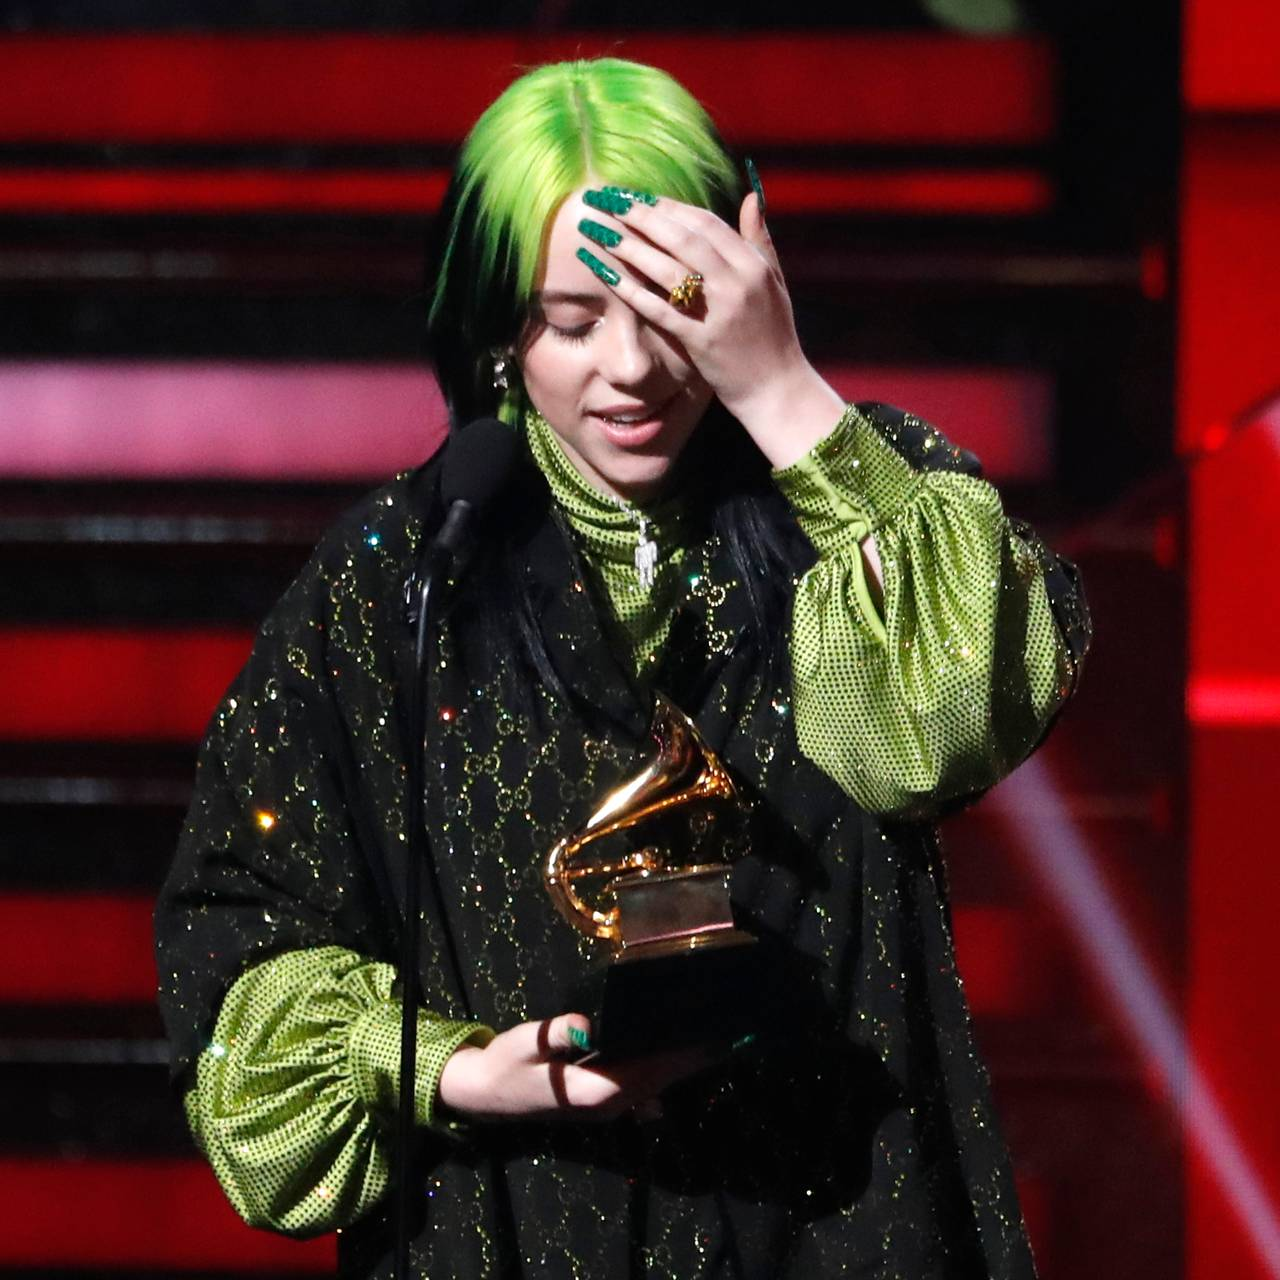 Billie Eilish vinner prisen Best New Artist.